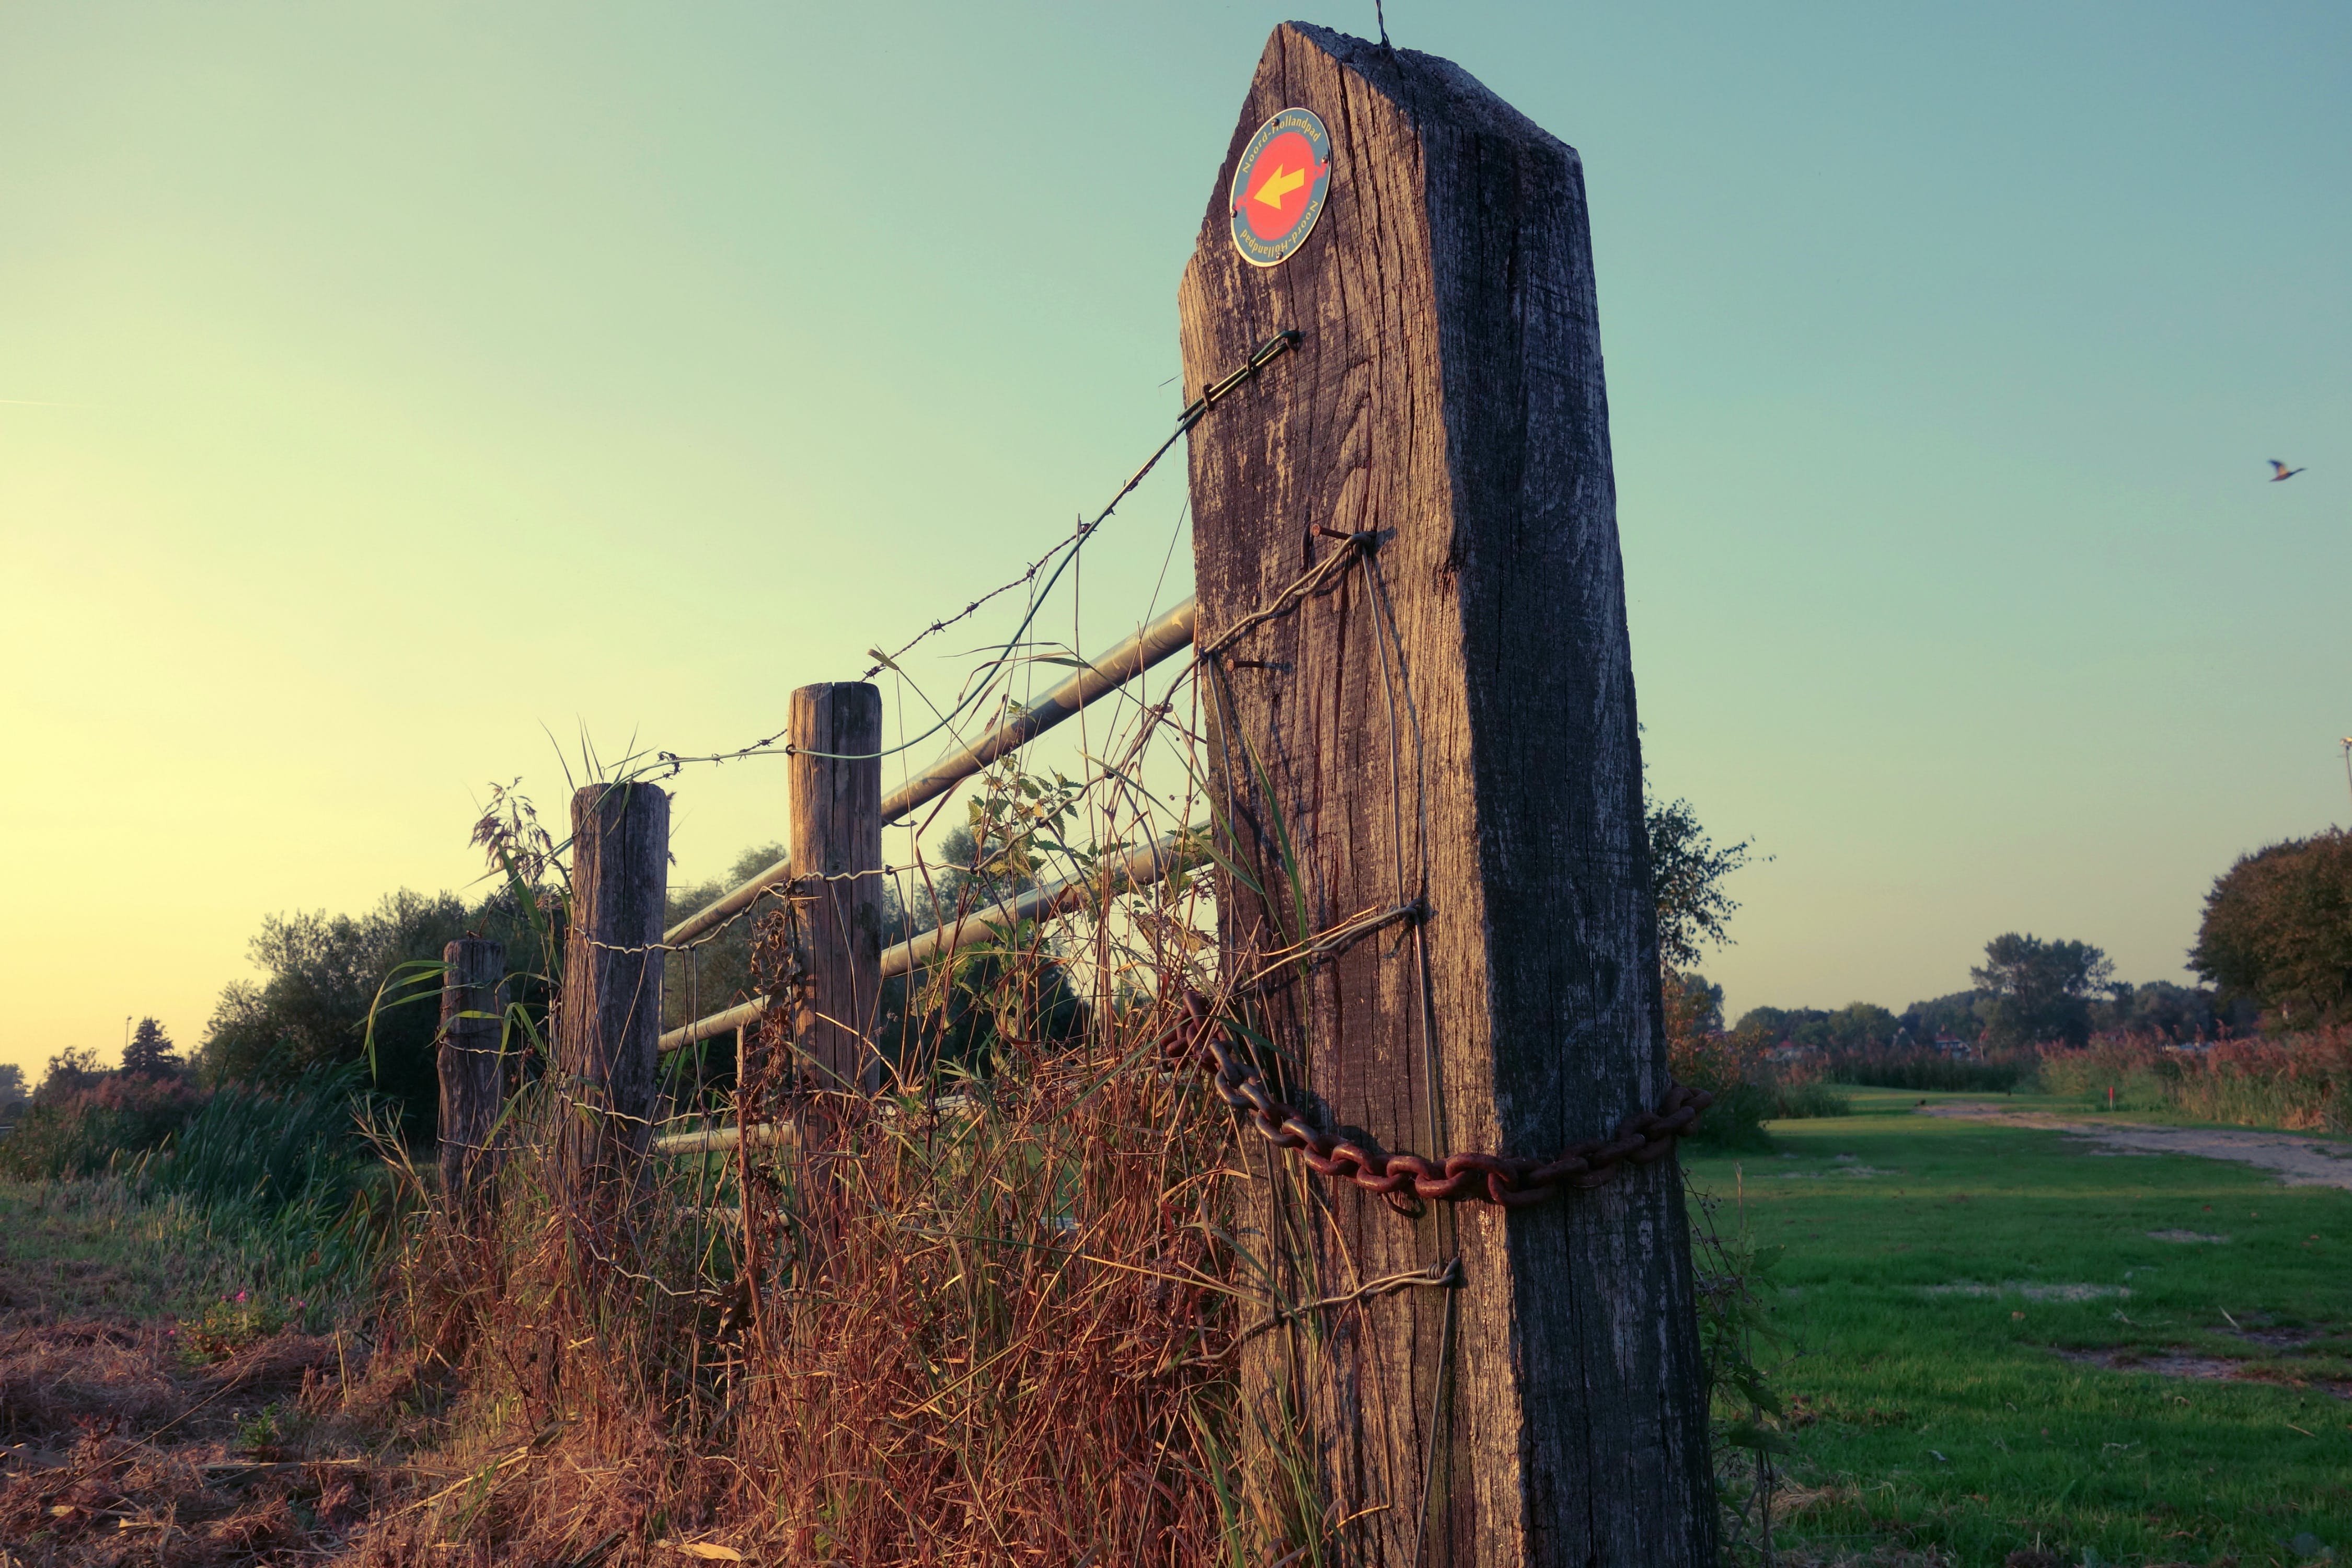 Free stock photo of landscape, arrow, fence, chain